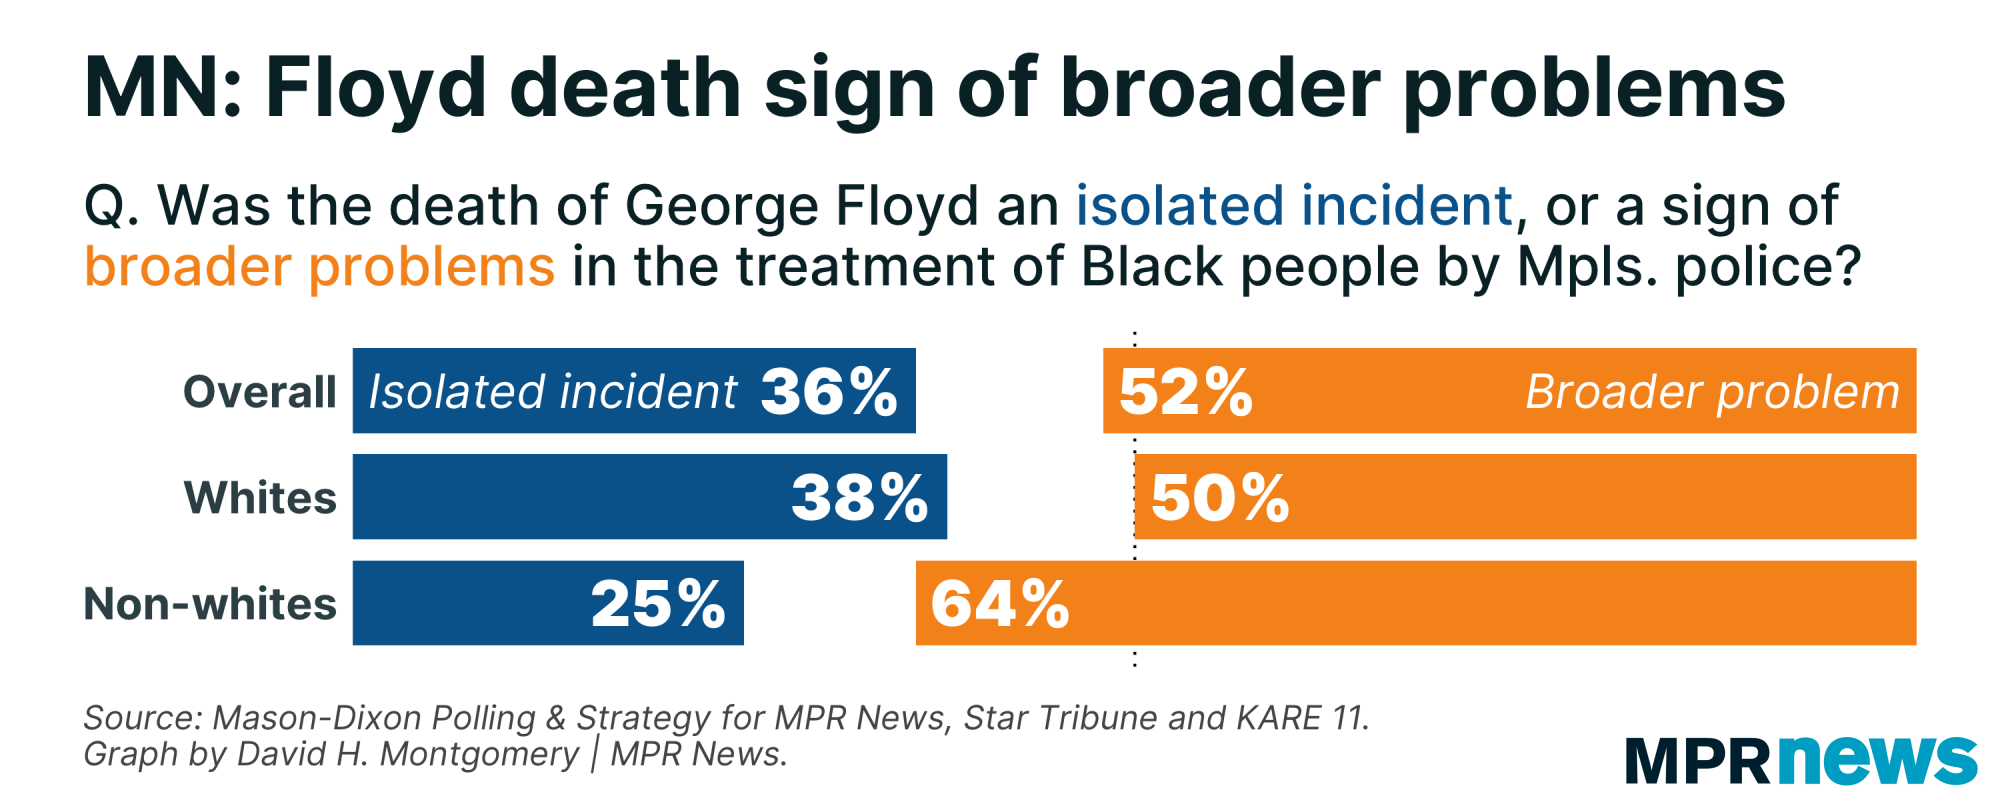 52% of Minnesotans see George Floyd's death as a sign of broader problems